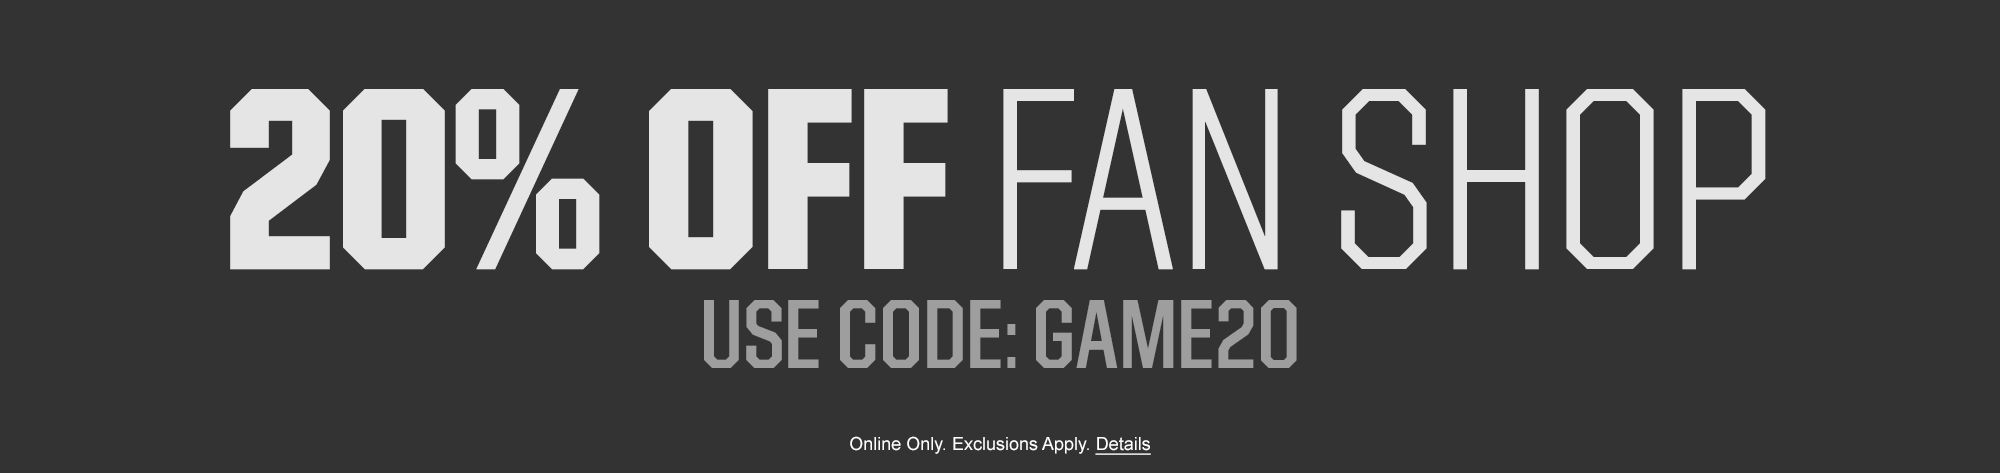 20% off Fan Gear - Use Code GAME20